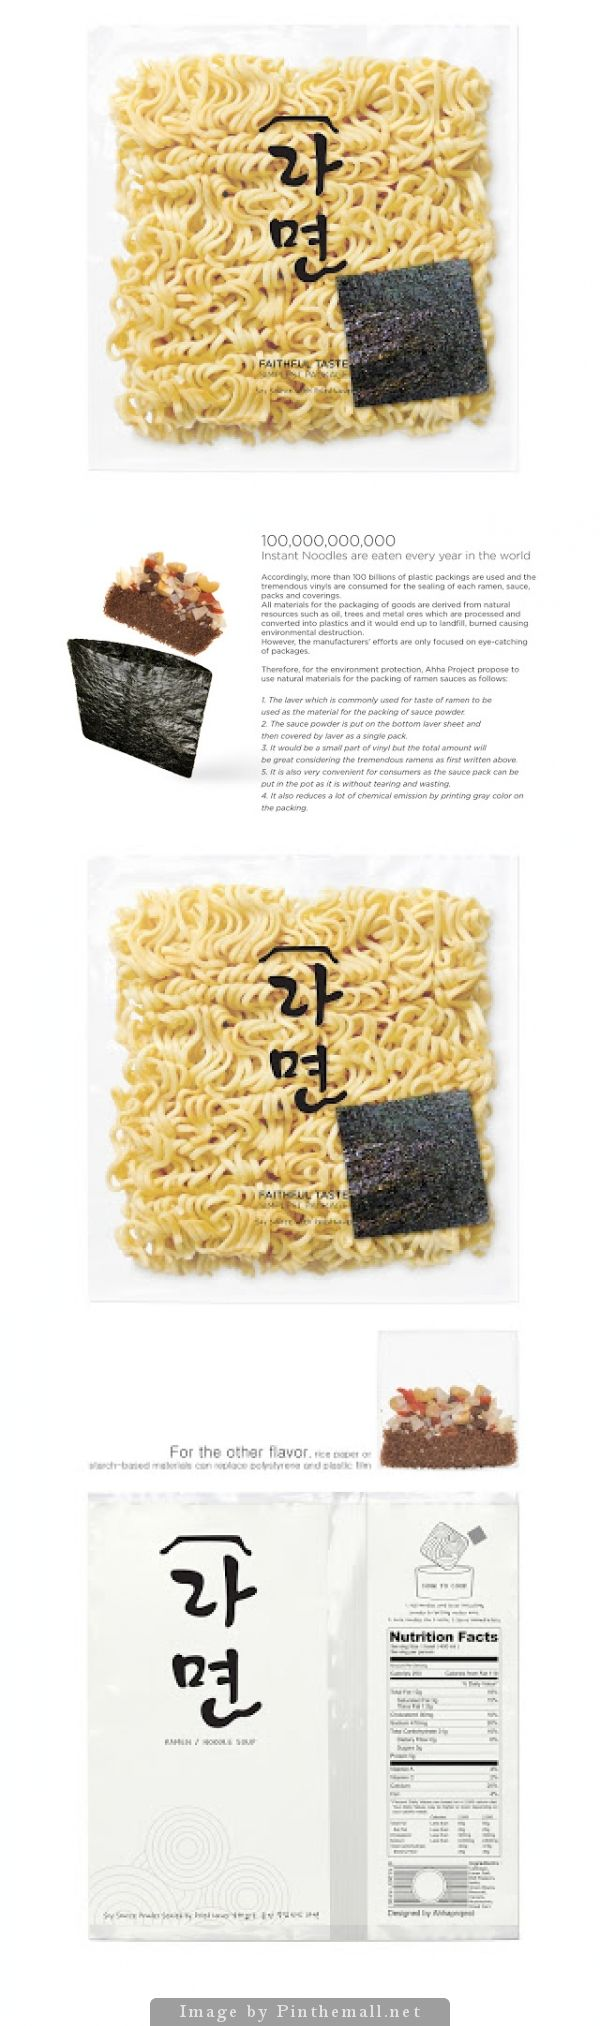 Ramen anyone? (a staggering amount of instant noodles) Love this packaging design concept curated by Packaging Diva PD